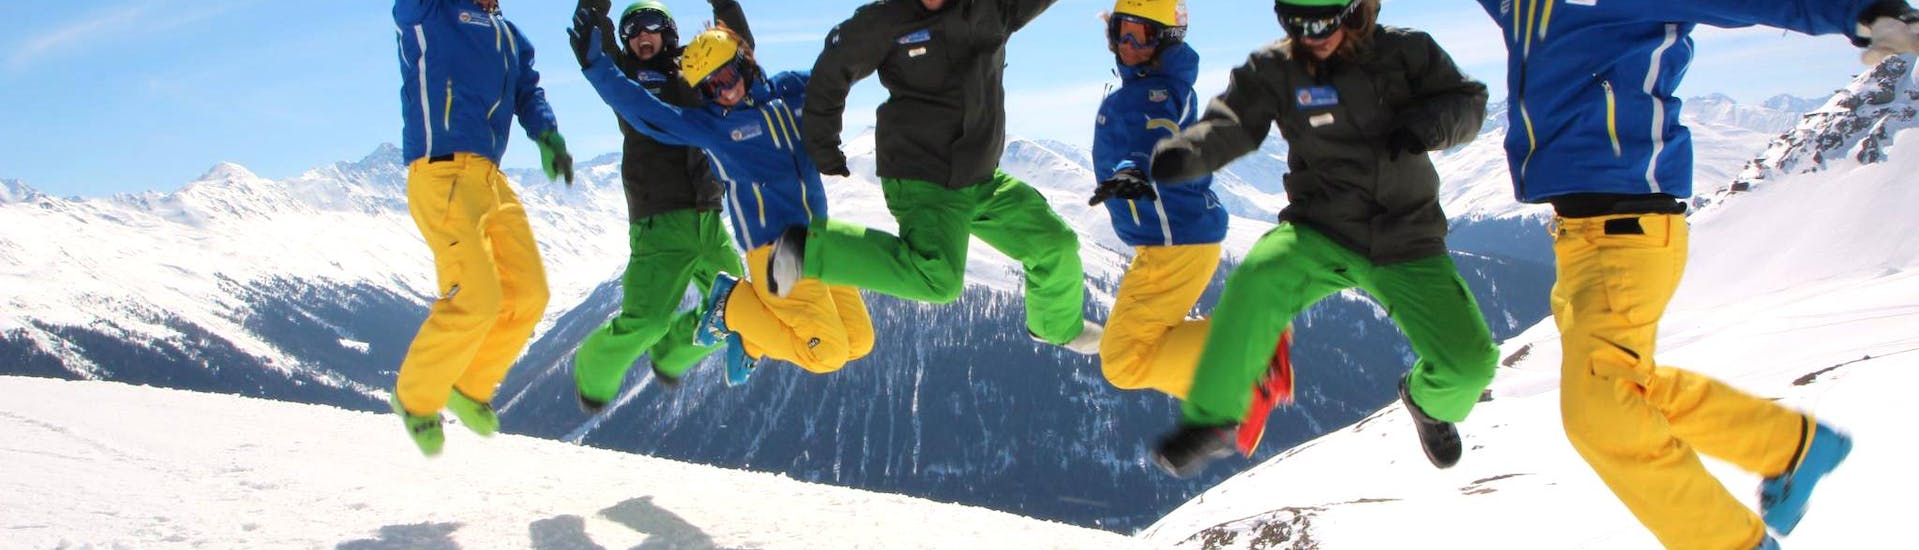 Ski Lessons for Teens (14-17 y.) - Advanced